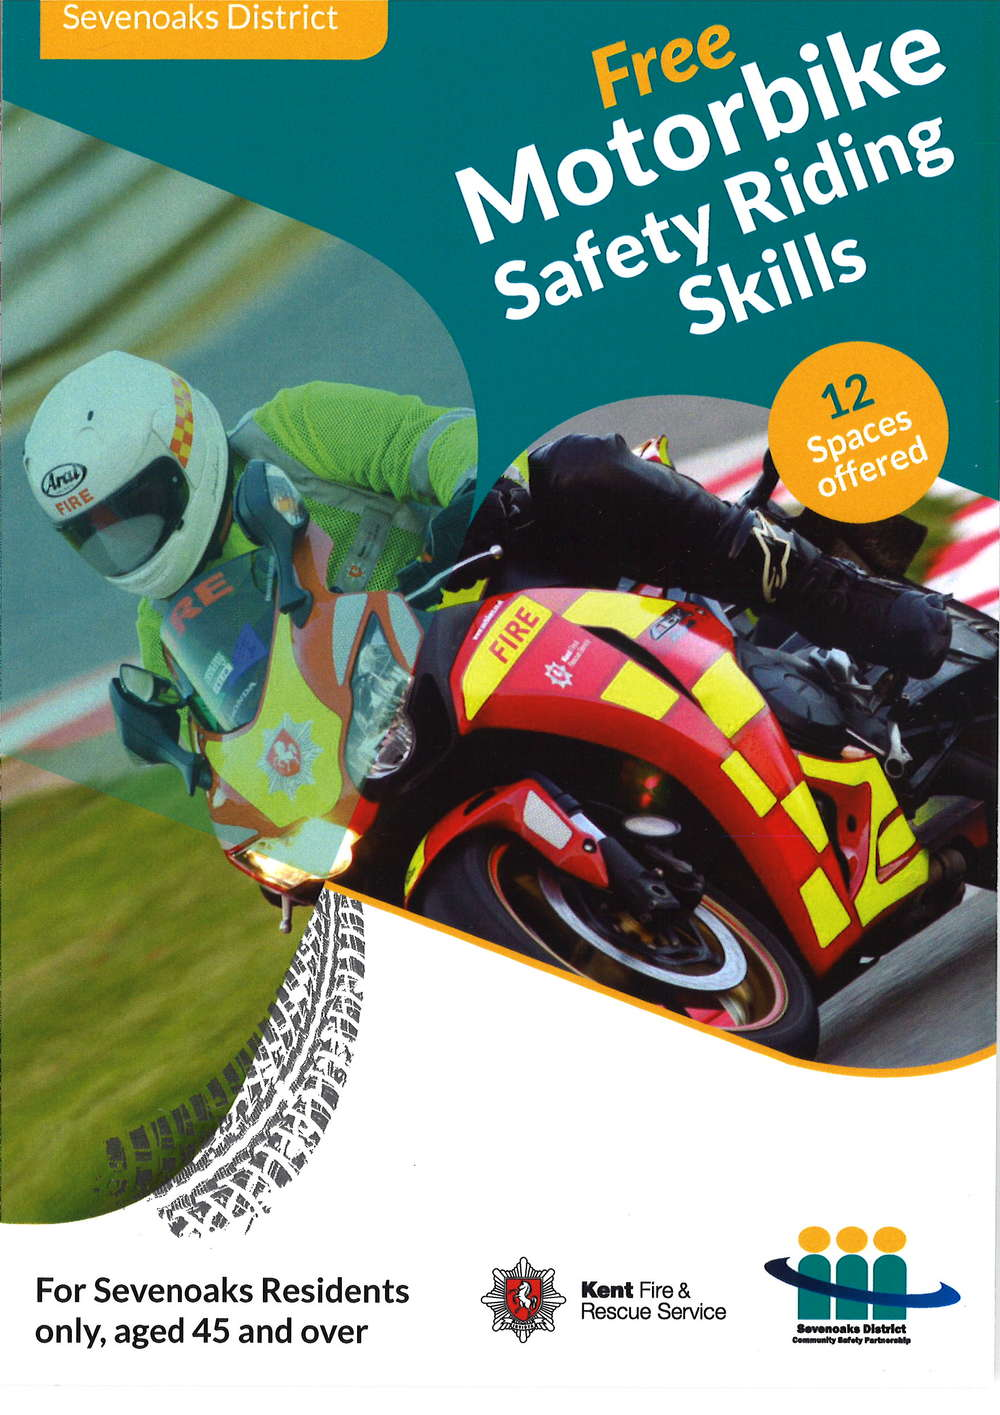 Free motorcycle training for the over 45's......